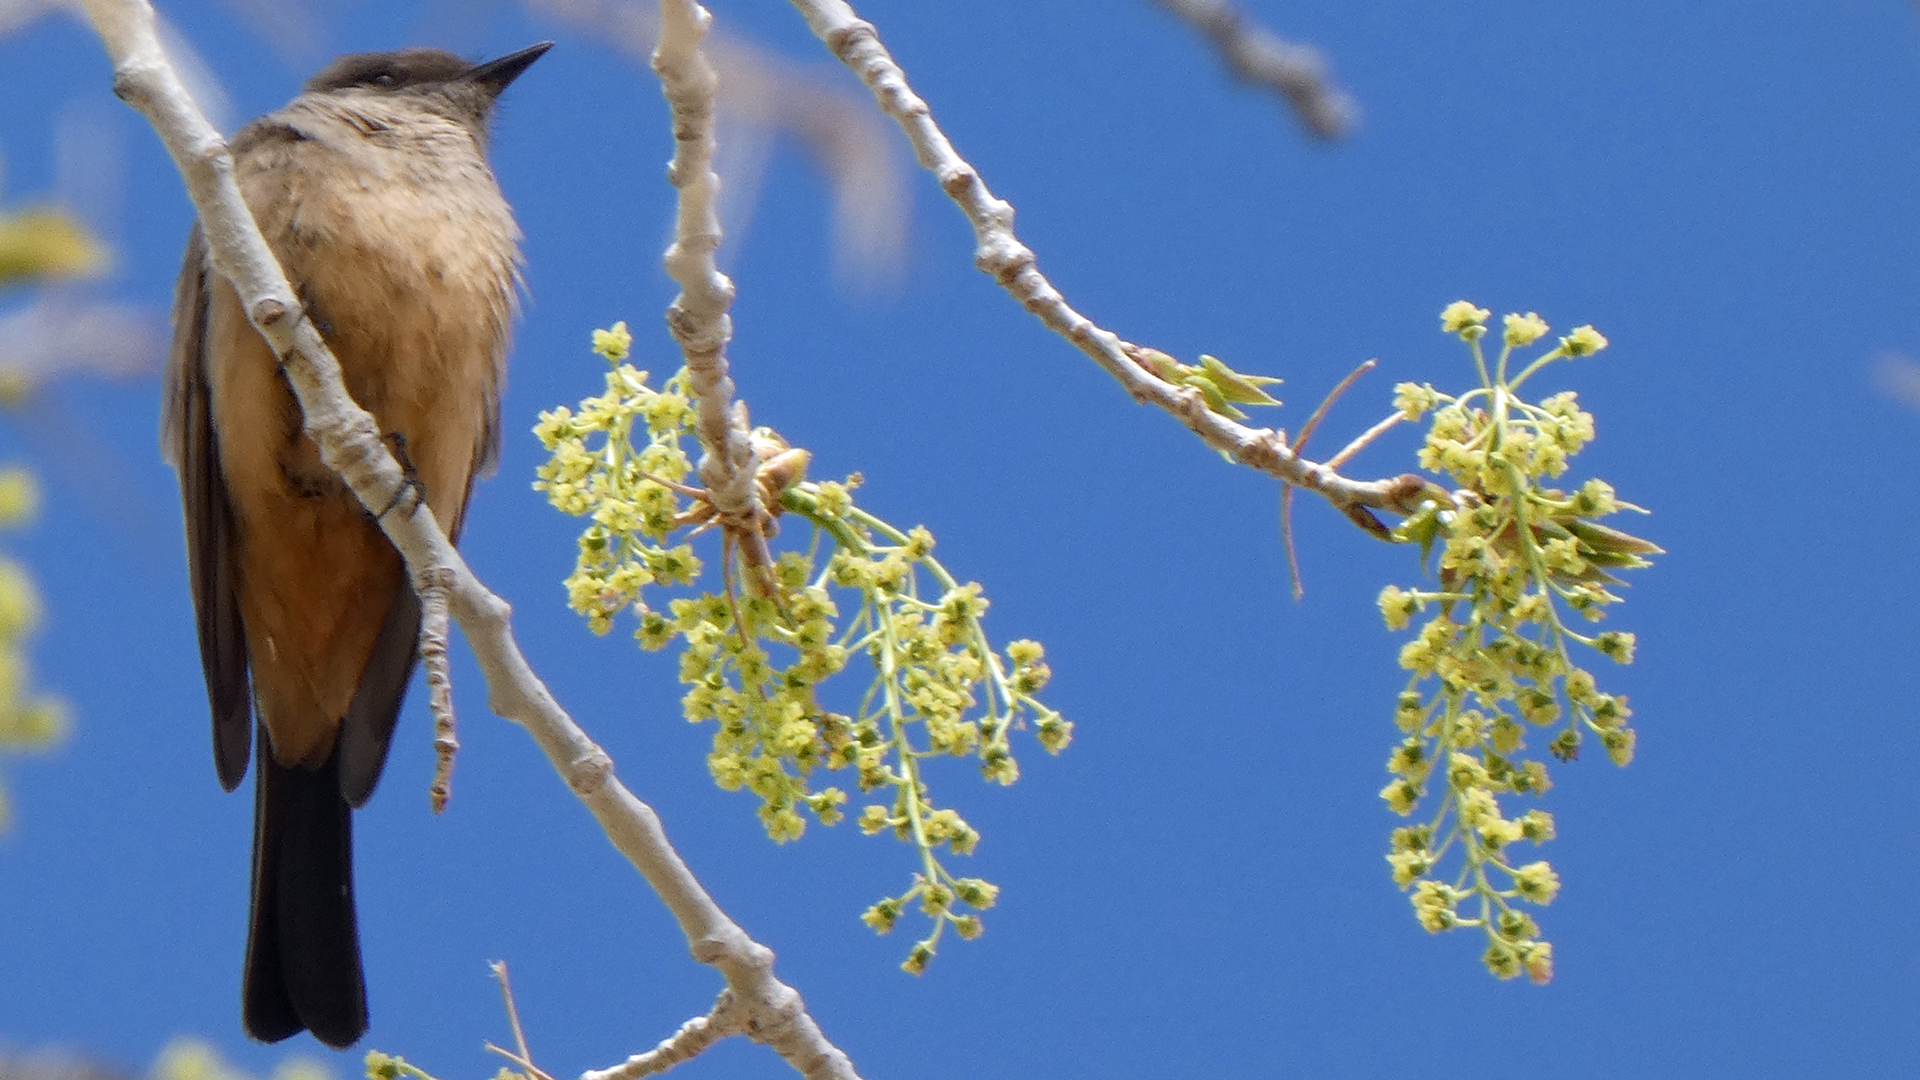 Female catkins (and Say's Phoebe), Albuquerque, April 2021